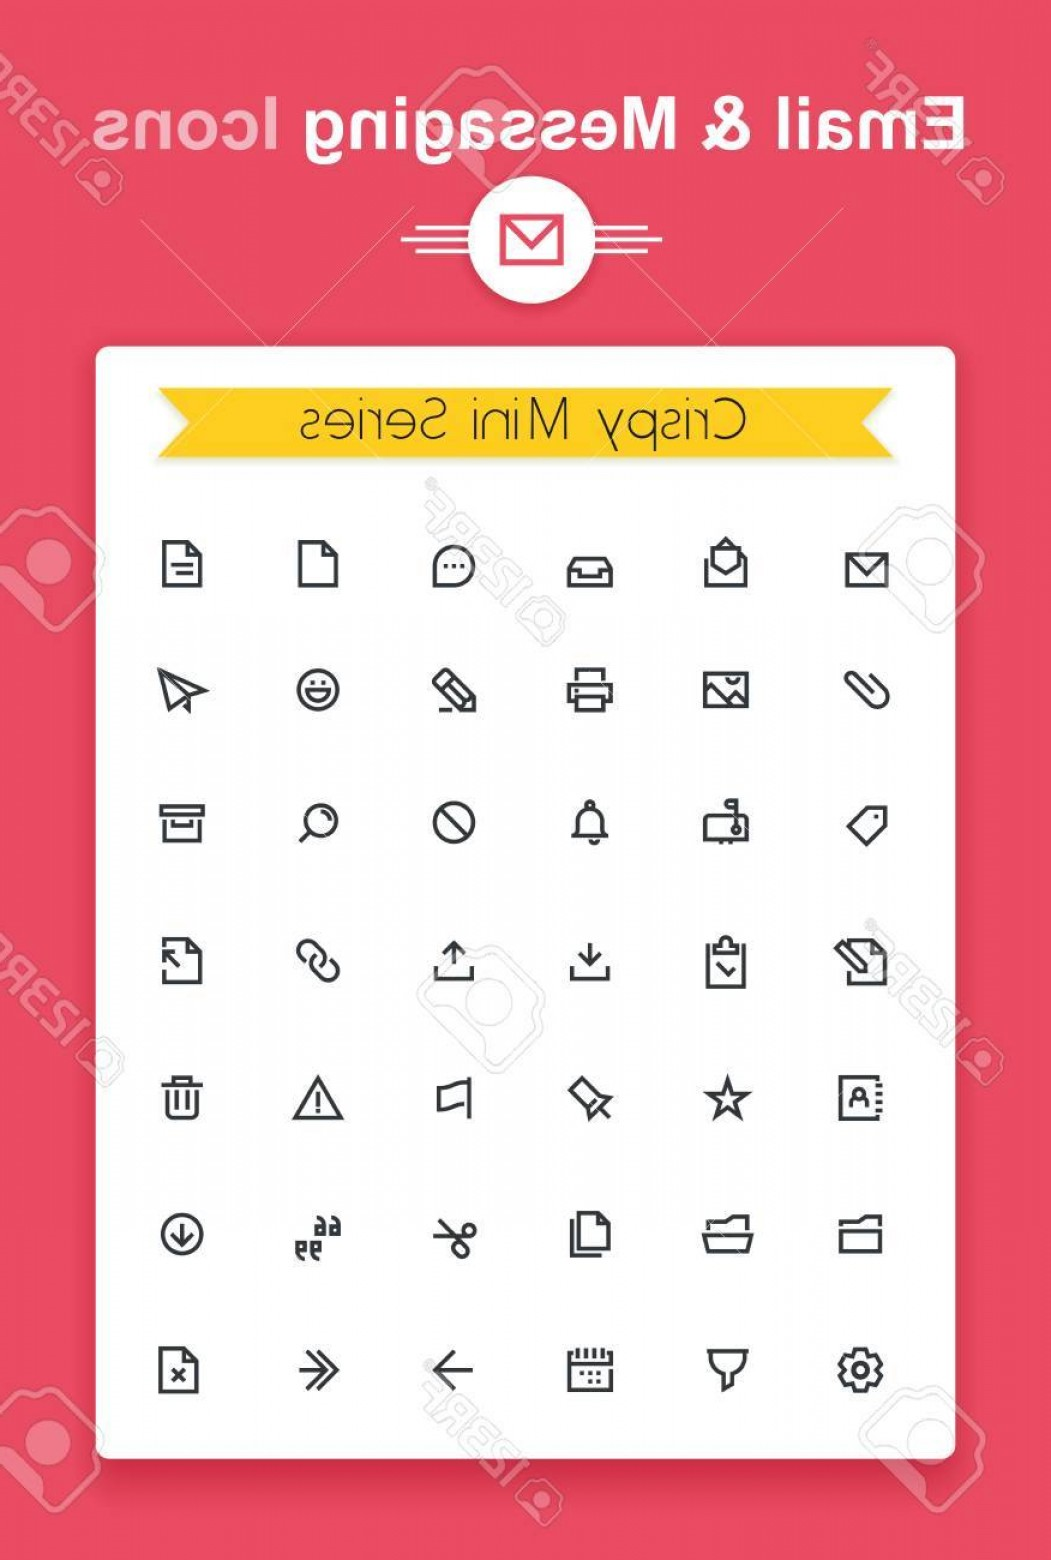 Small Email Icon Vector: Photostock Vector Vector Line Email And Messaging App Tiny Icon Set Minimalistic Crisp Contour Icons For The Best Reco